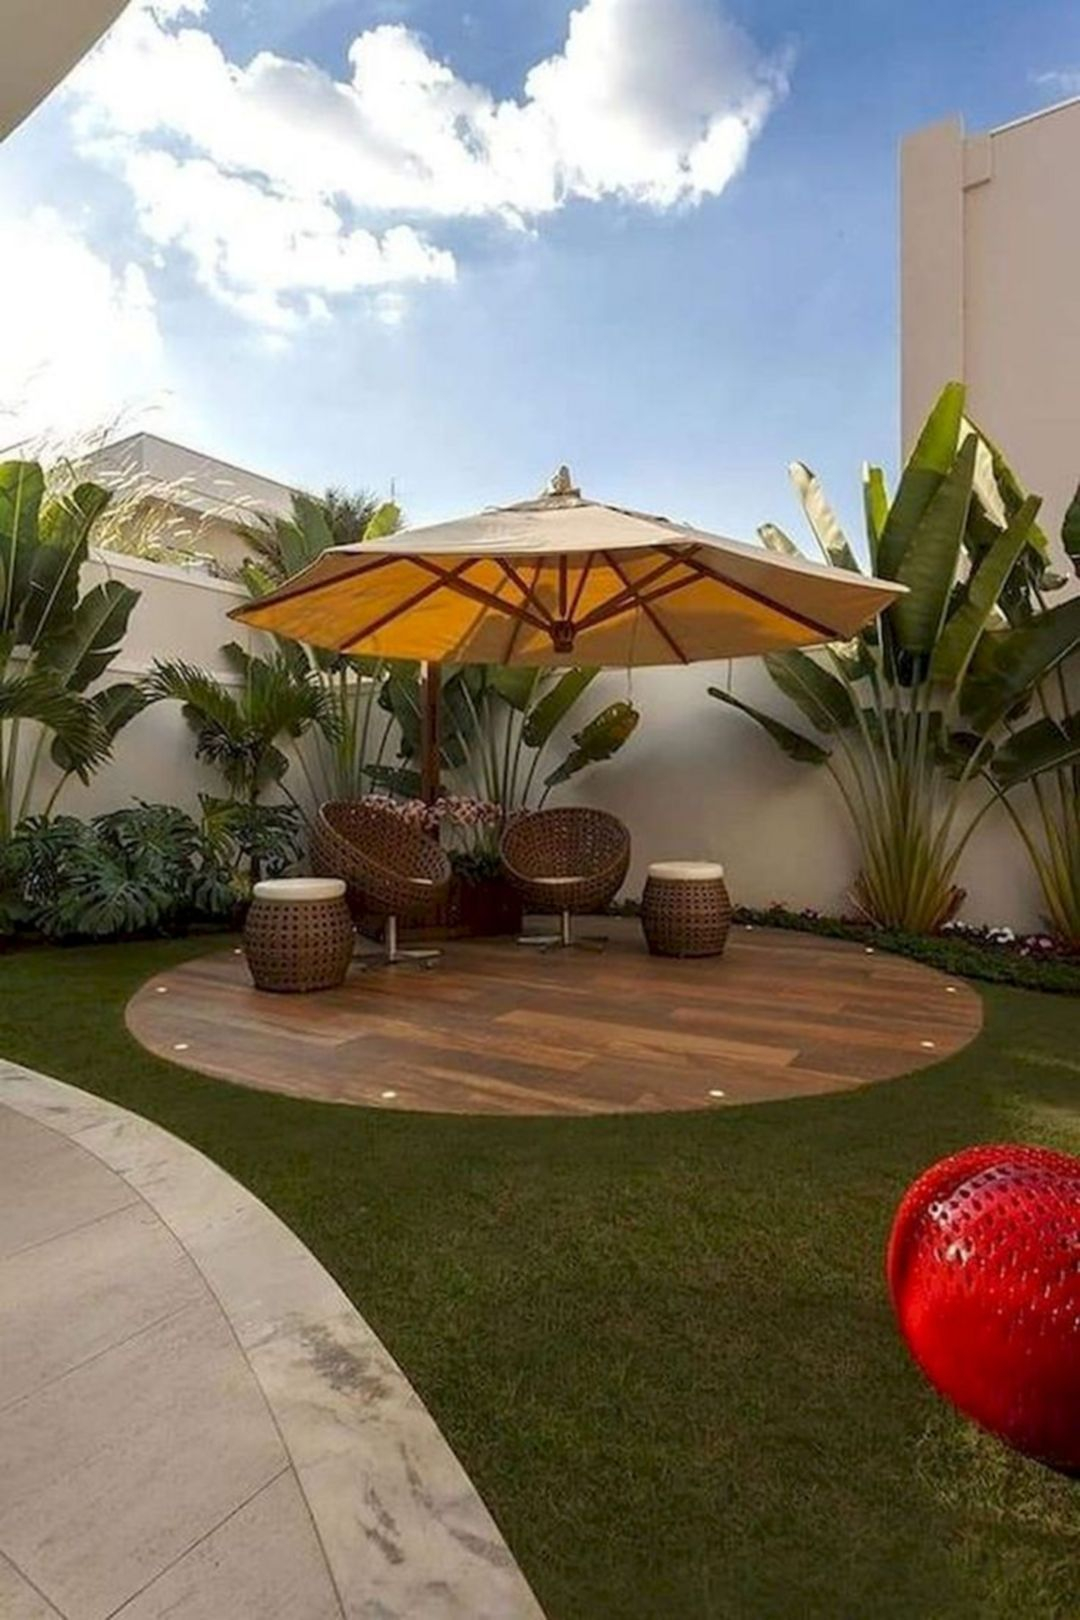 Brilliant Gardening Design Ideas You Need To Know In 202011